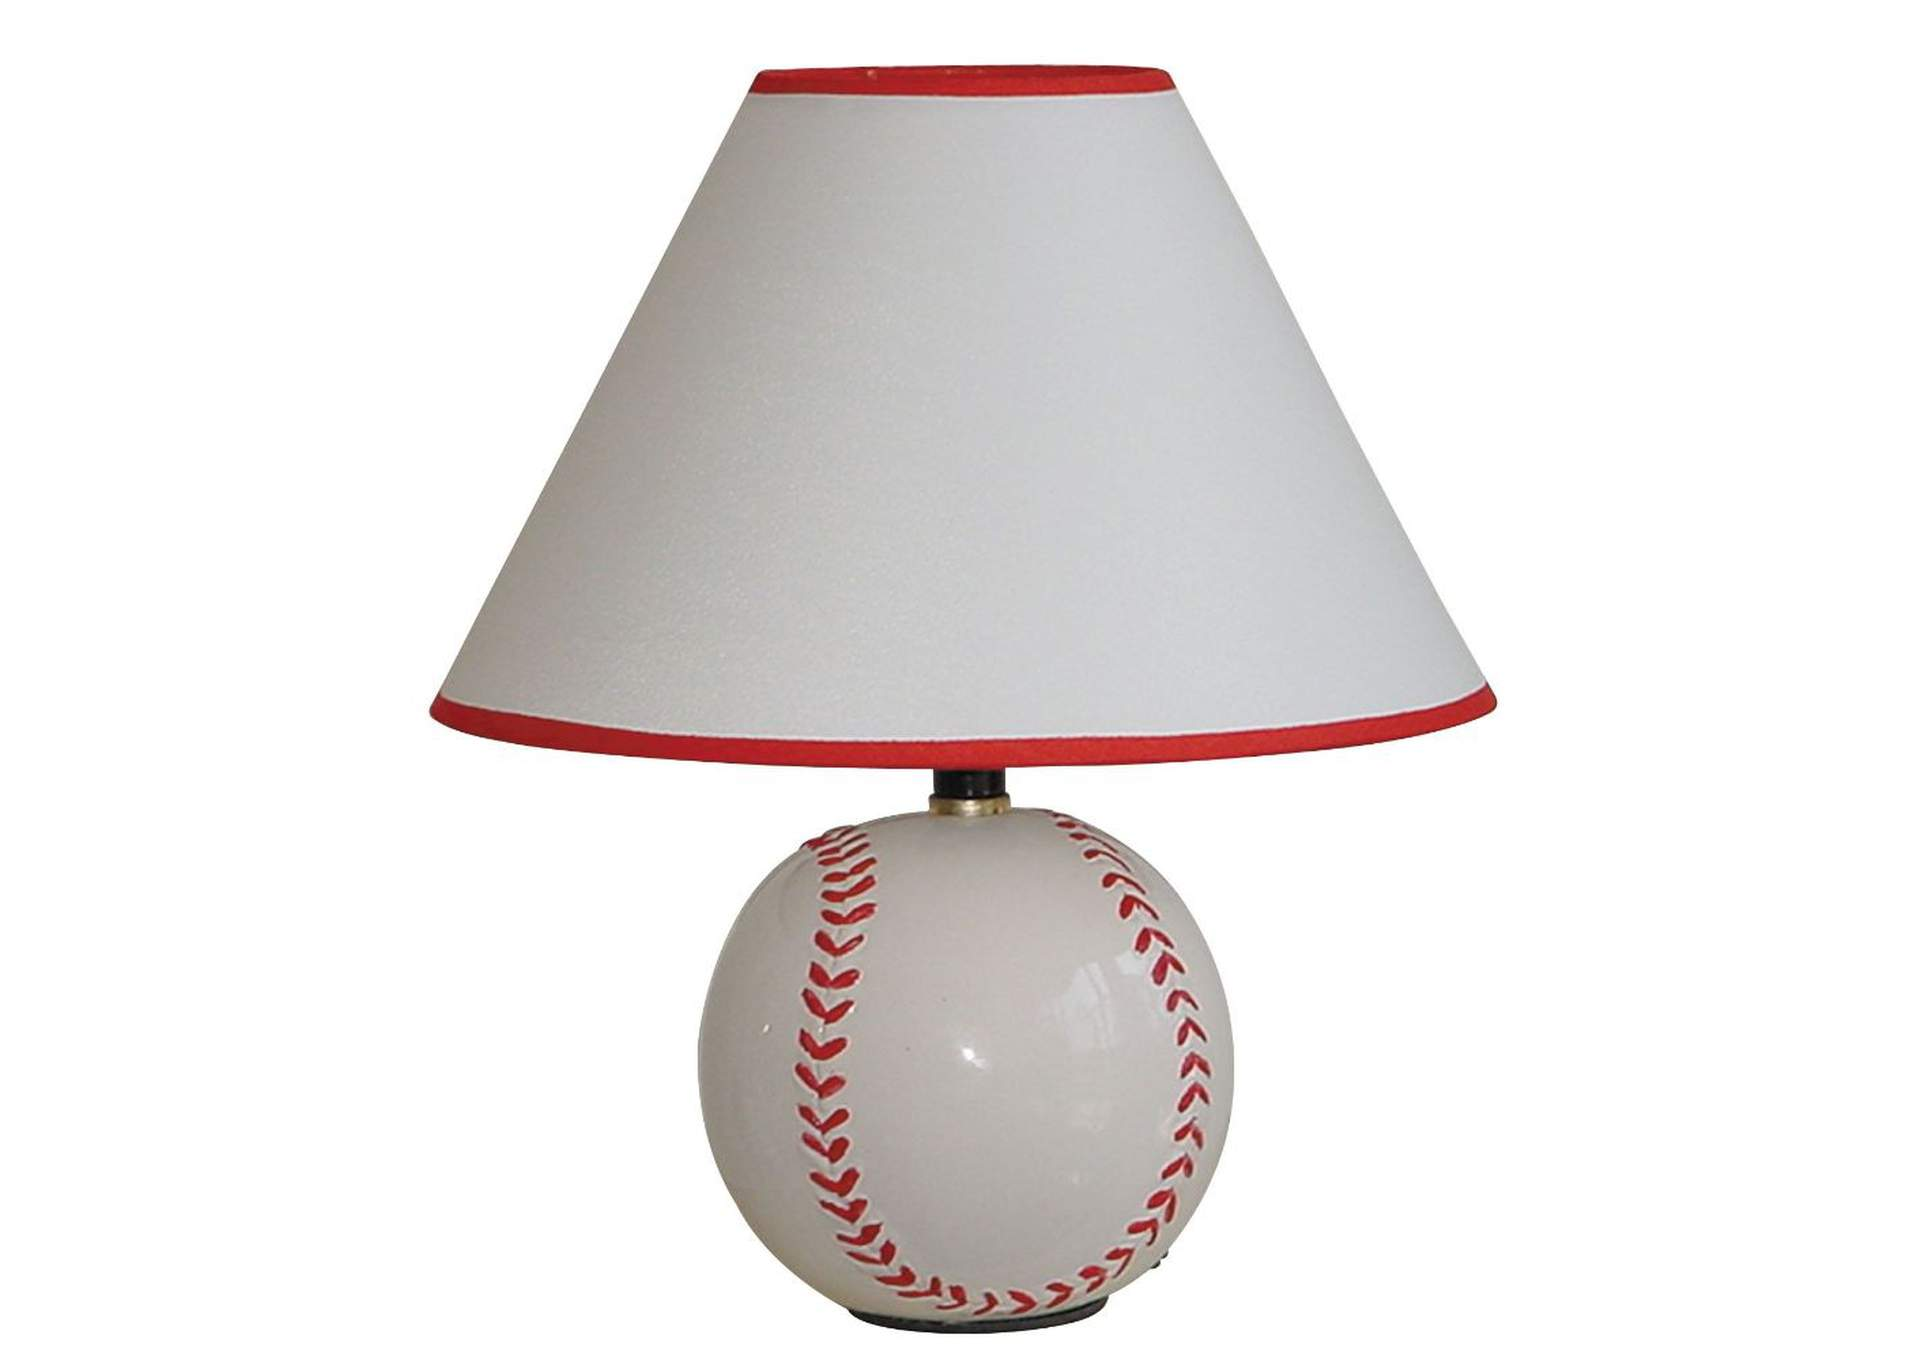 Enjoyable Gorees Furniture Opelika Al All Star Baseball Table Lamp Unemploymentrelief Wooden Chair Designs For Living Room Unemploymentrelieforg